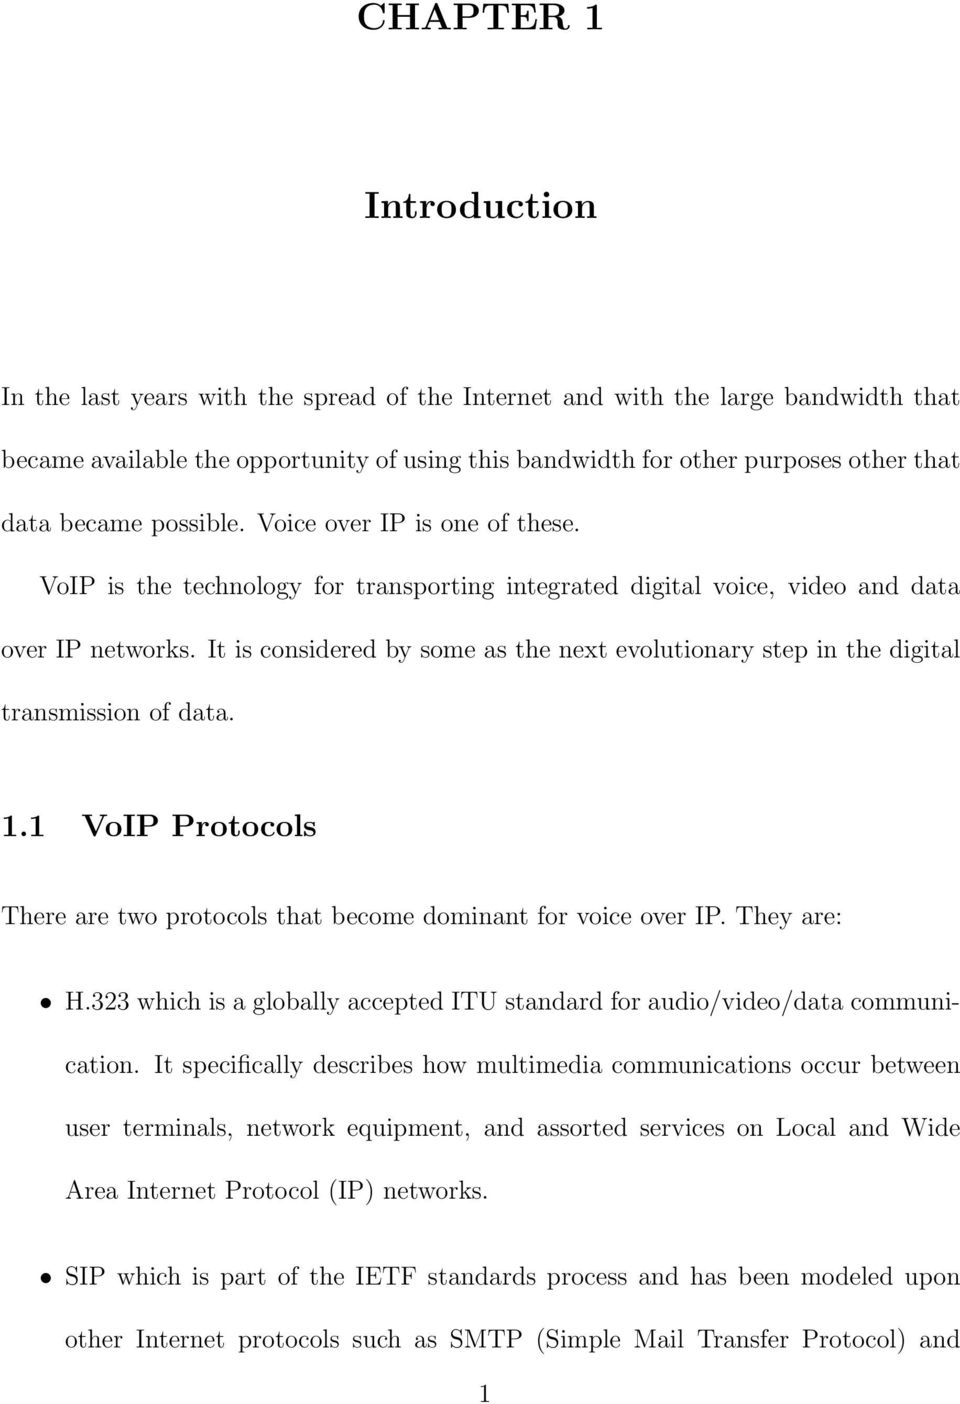 It is considered by some as the next evolutionary step in the digital transmission of data. 1.1 VoIP Protocols There are two protocols that become dominant for voice over IP. They are: H.